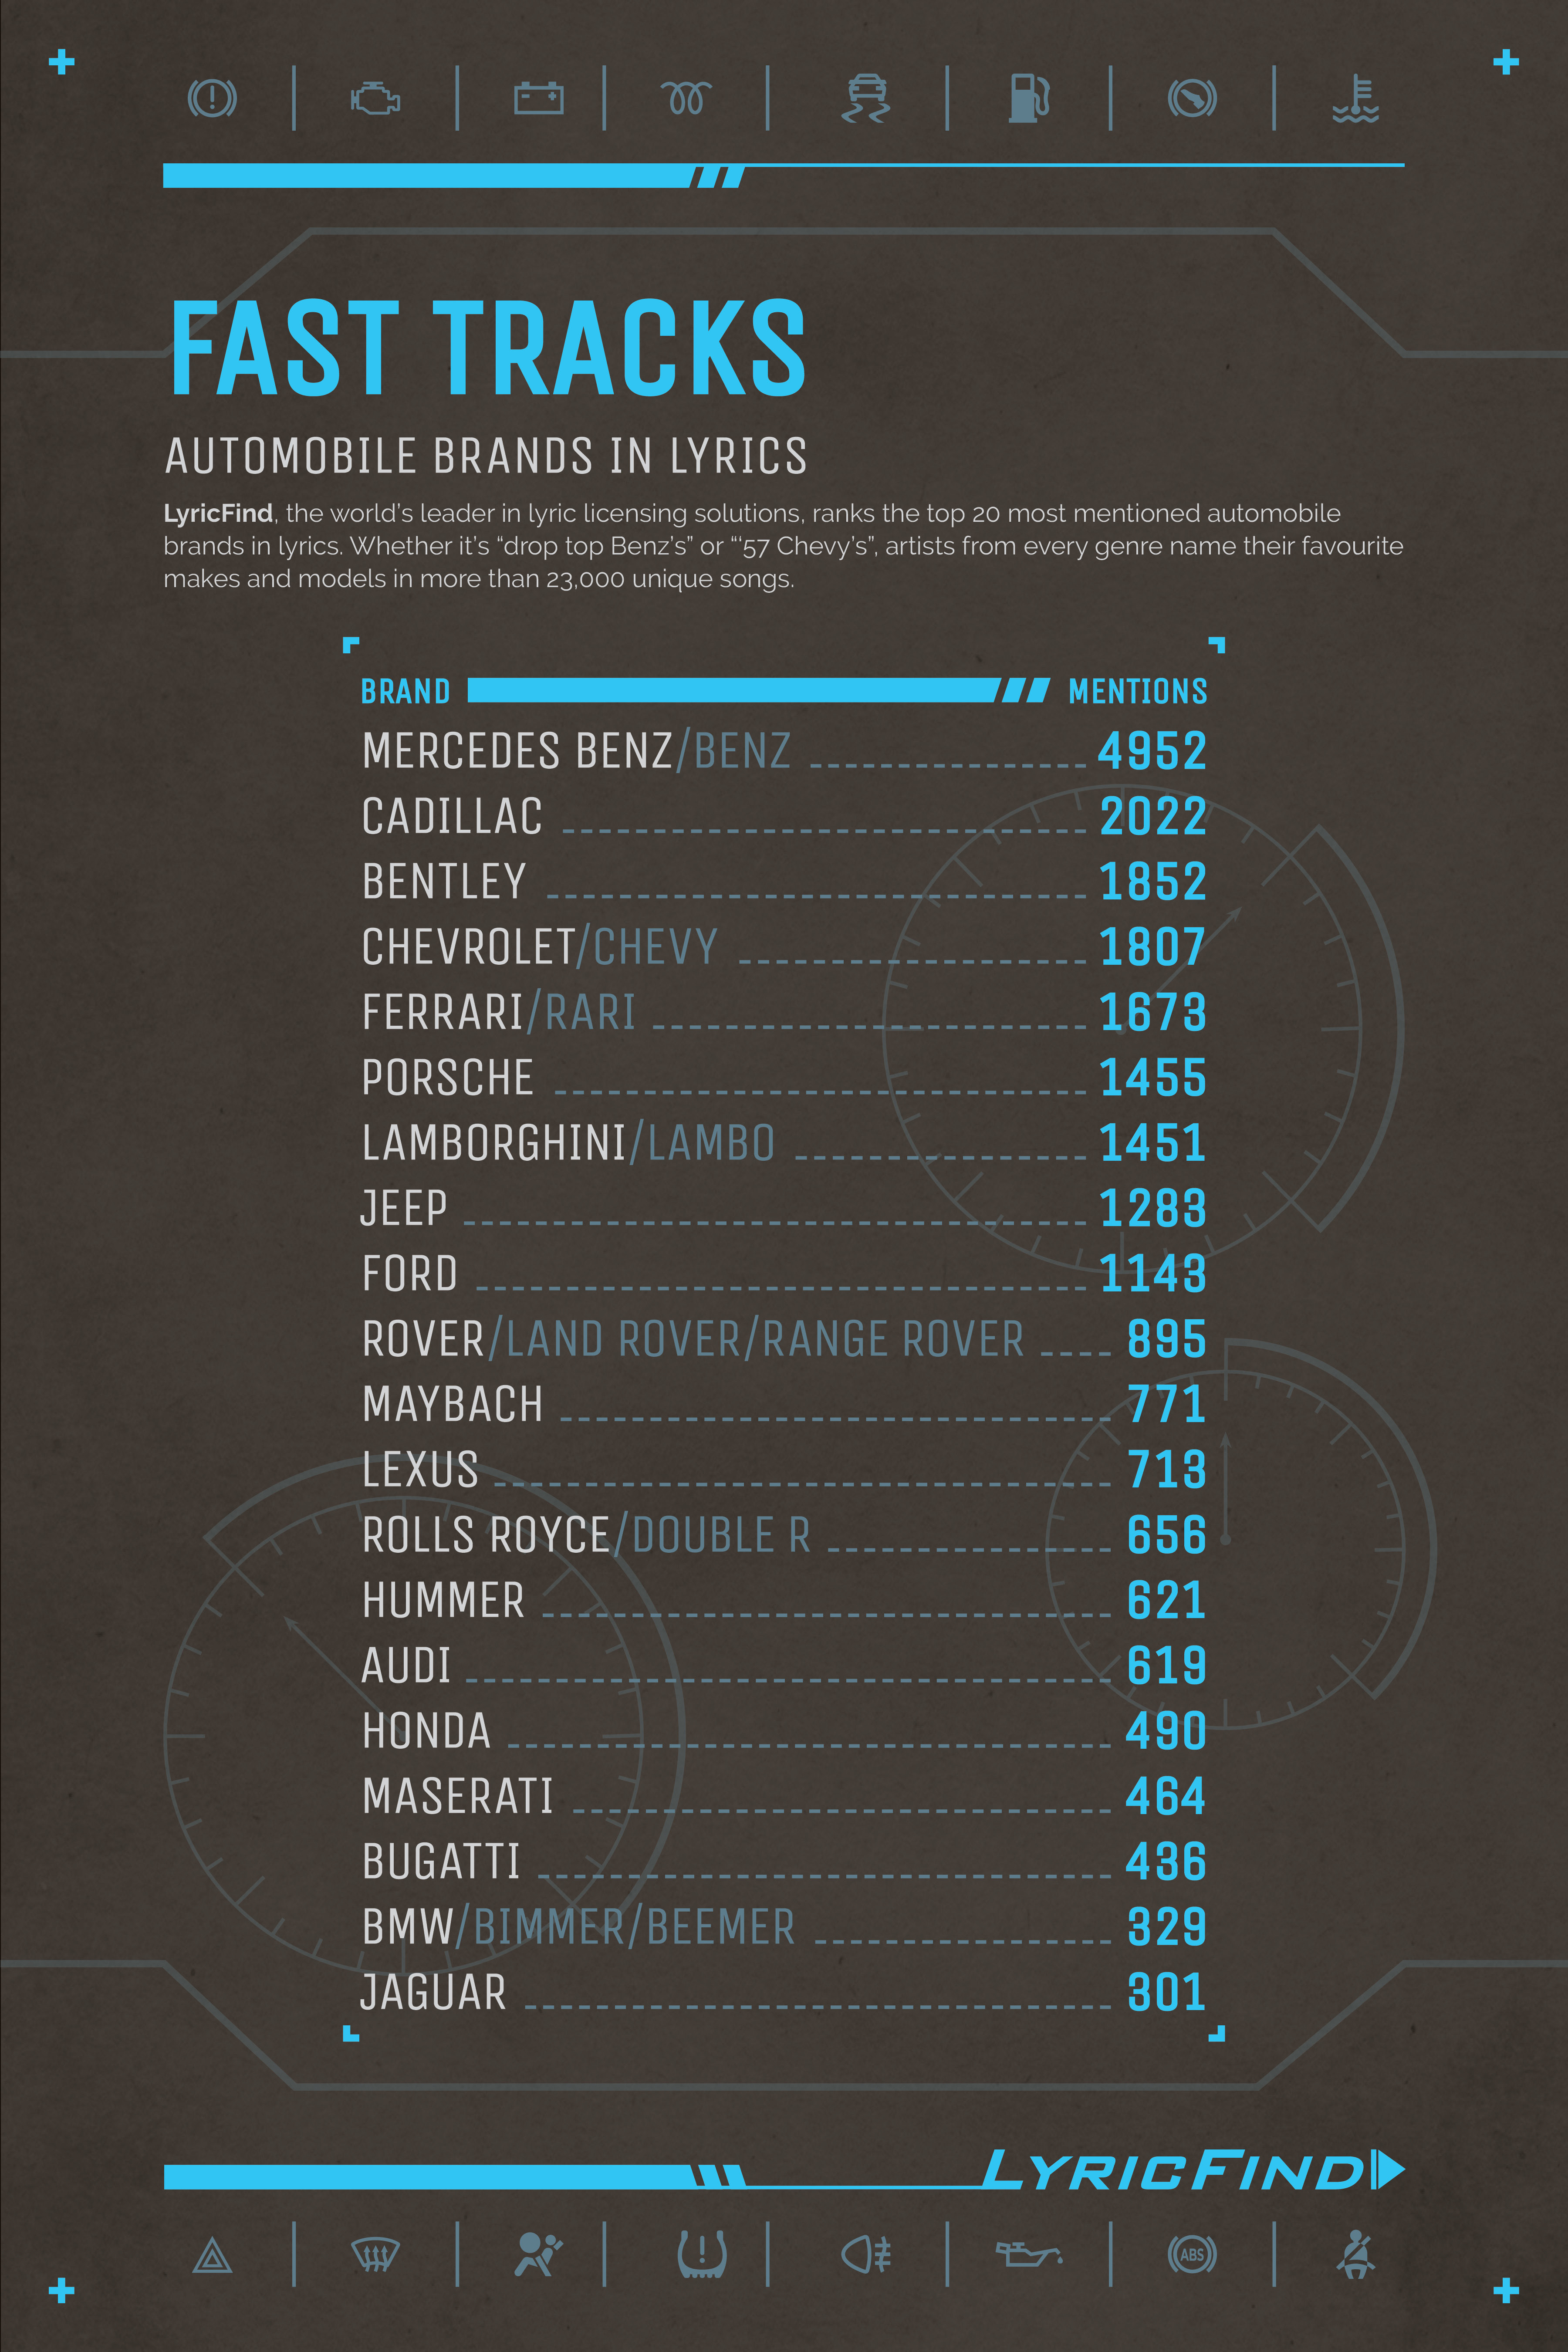 What car brand is mentioned in the most music lyrics?